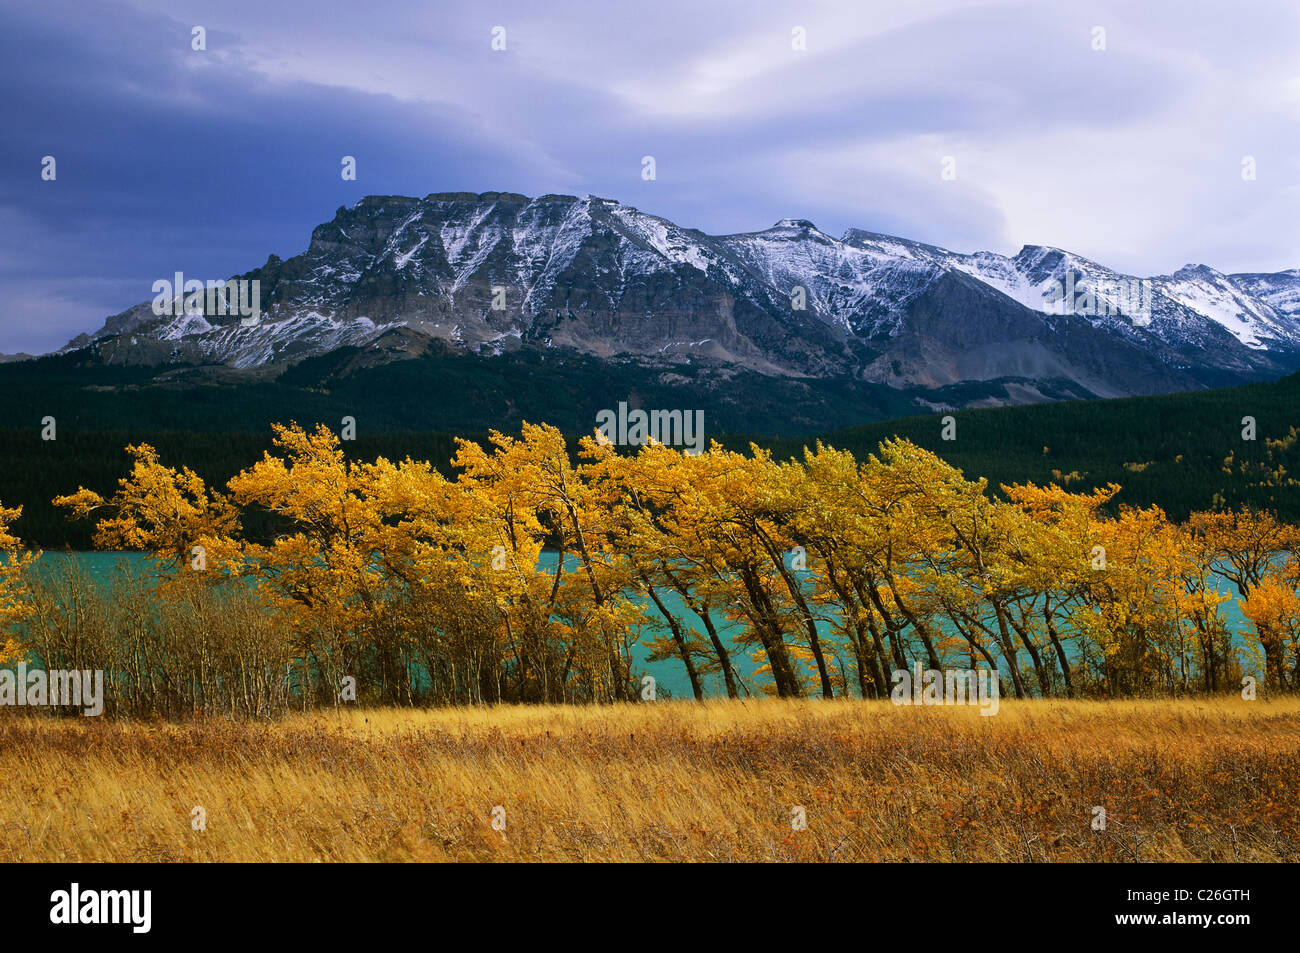 Howling winds forebode stormy weather in Waterton-Lakes National Park, Alberta, Canada. - Stock Image